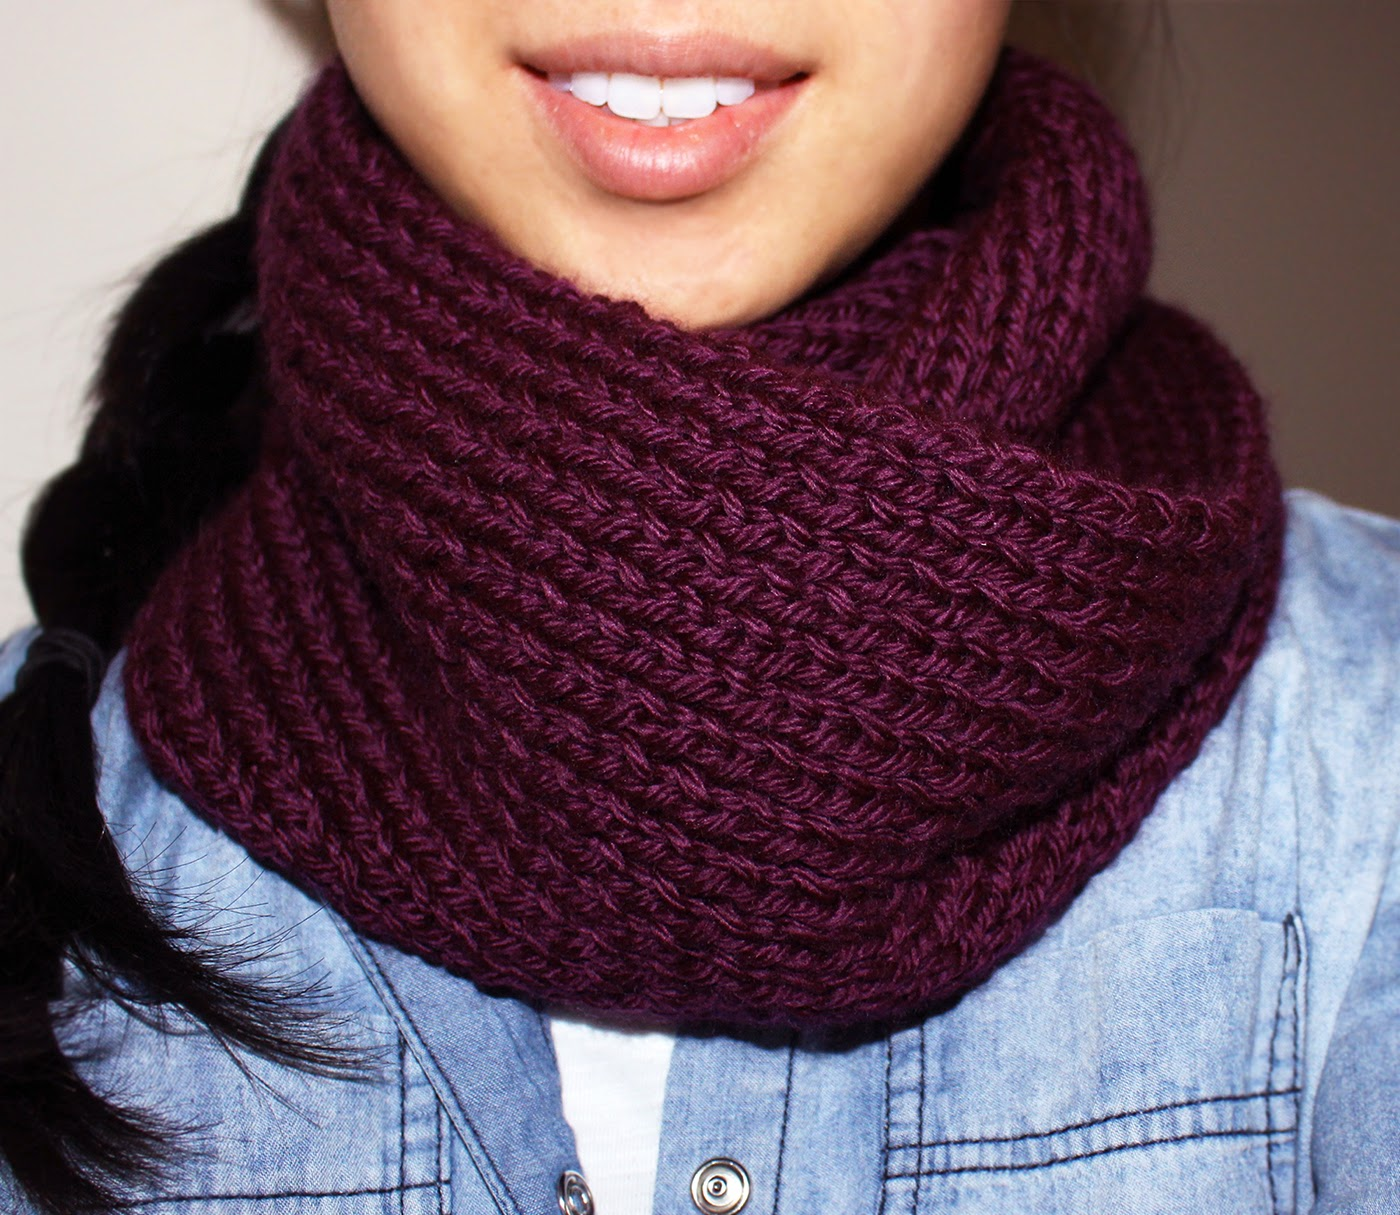 Pattern To Knit Infinity Scarf : Purllin: Acai Infinity Circle Scarf [free knitting pattern]